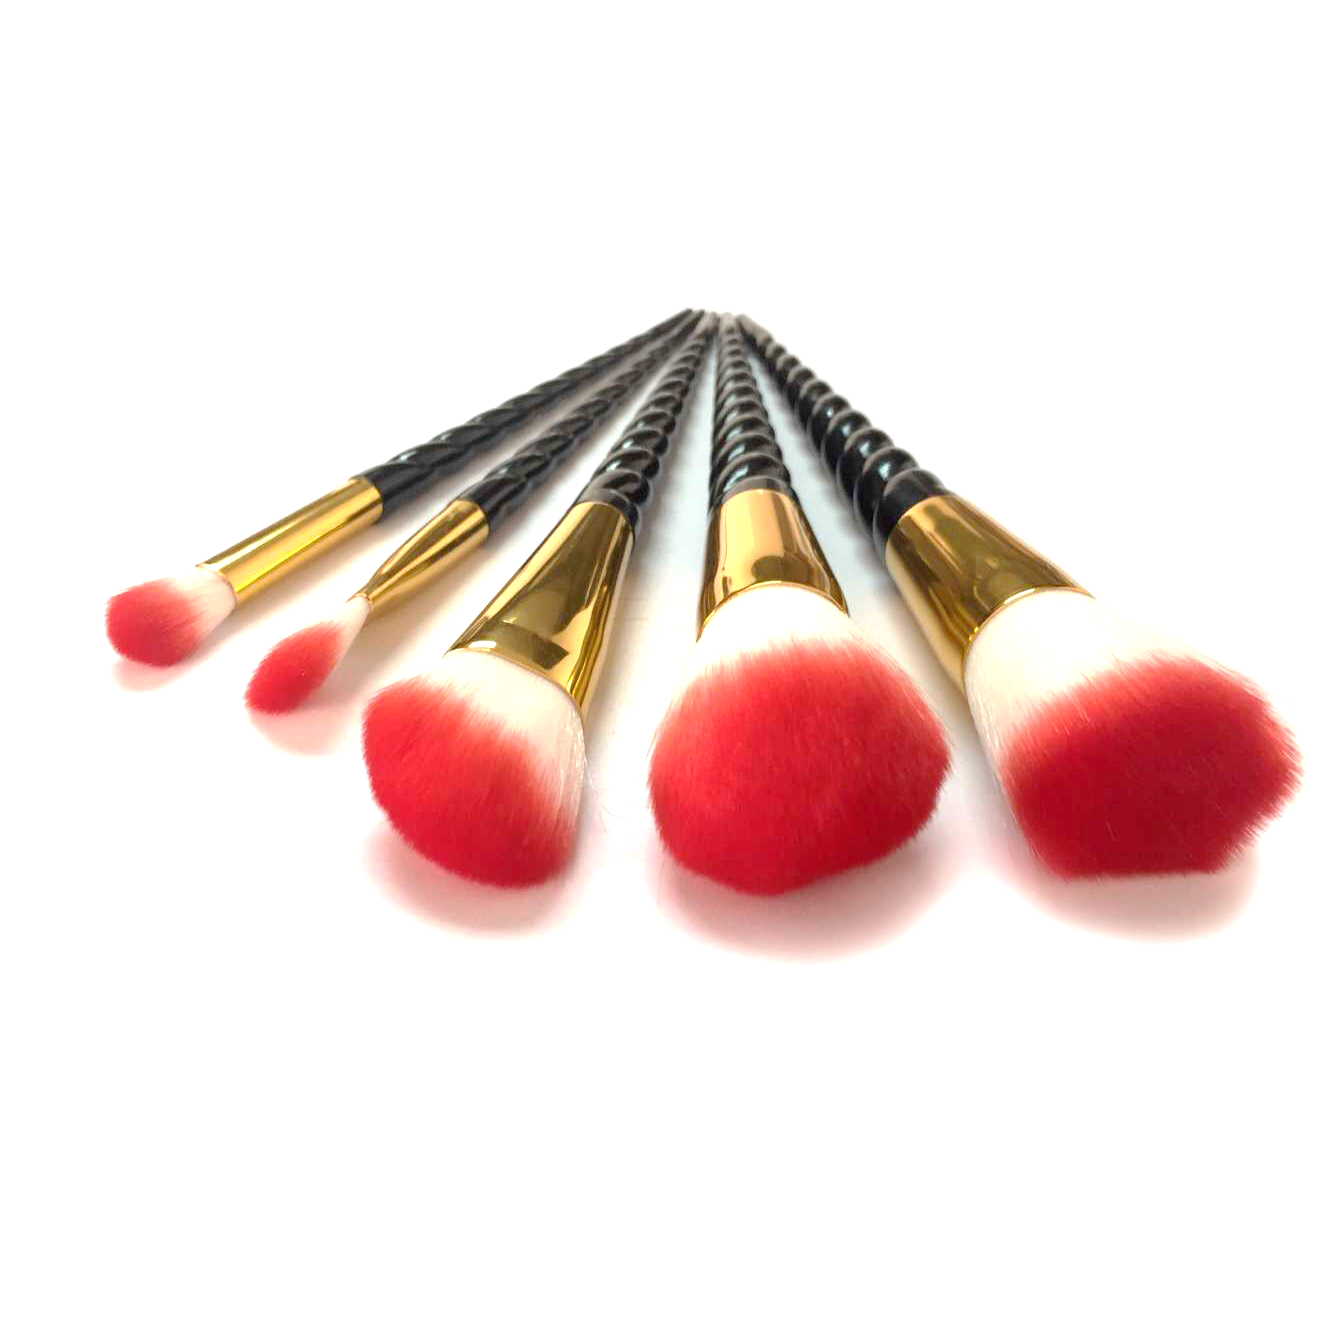 Black Unicorn Makeup Brushes - 5/10 Set - 70% OFF